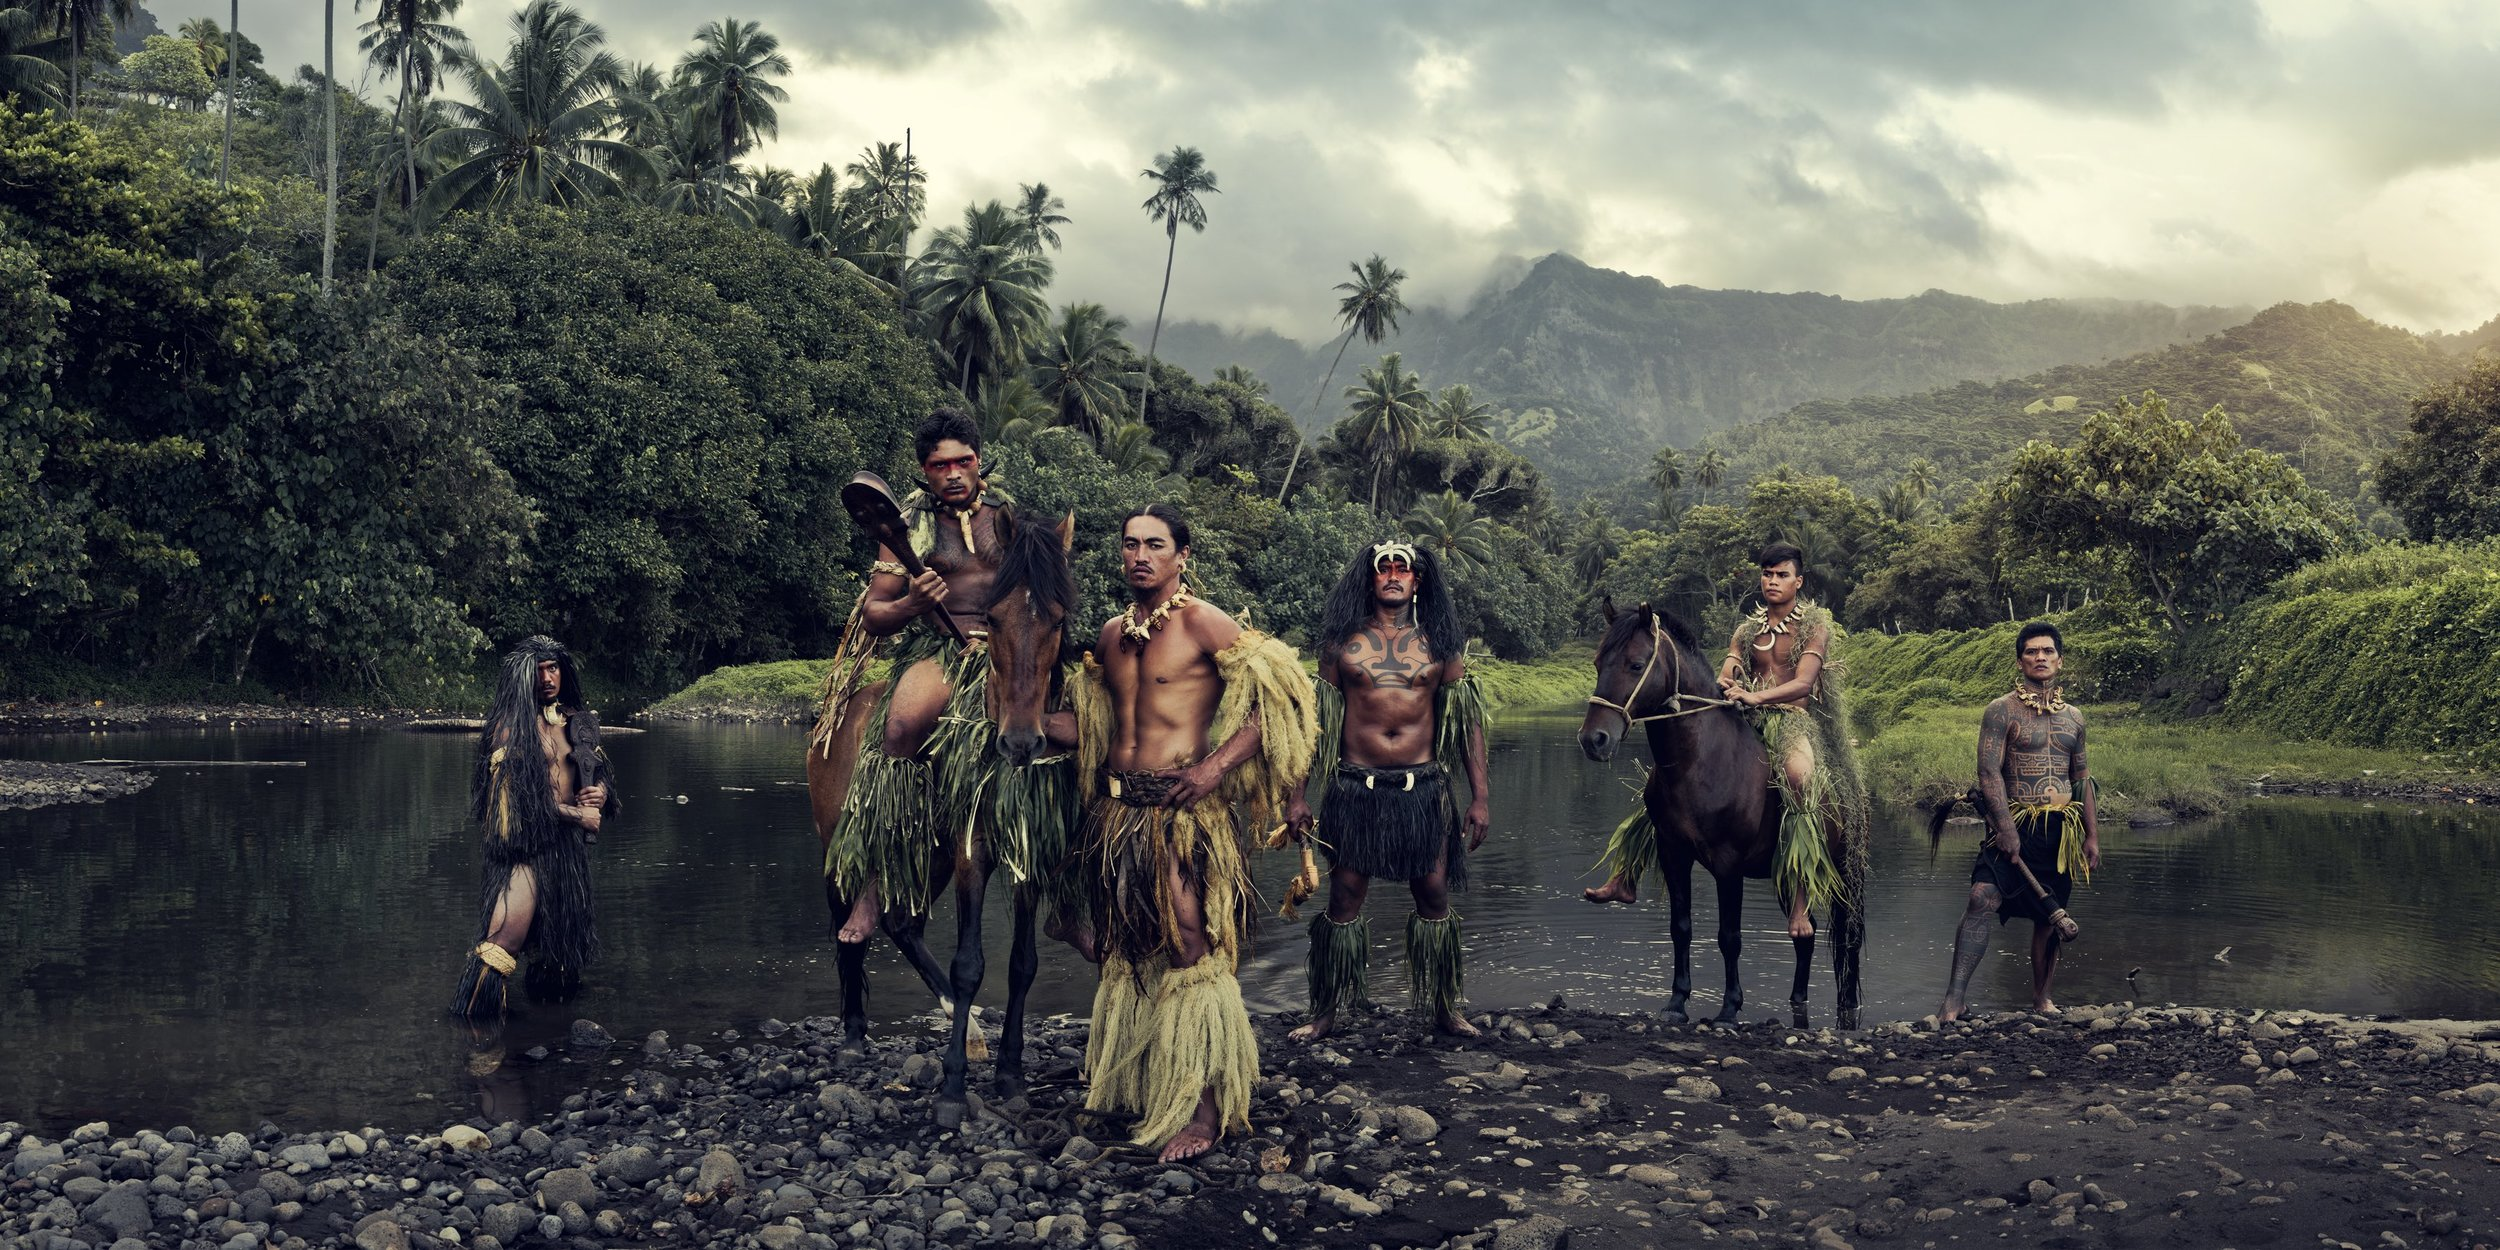 XXVI 16 - Vaioa River, Atuona, Hiva Oa, Marquesas Islands  Homage to Humanity by Jimmy Nelson  Available in 4 sizes. Small editions.  Price on request